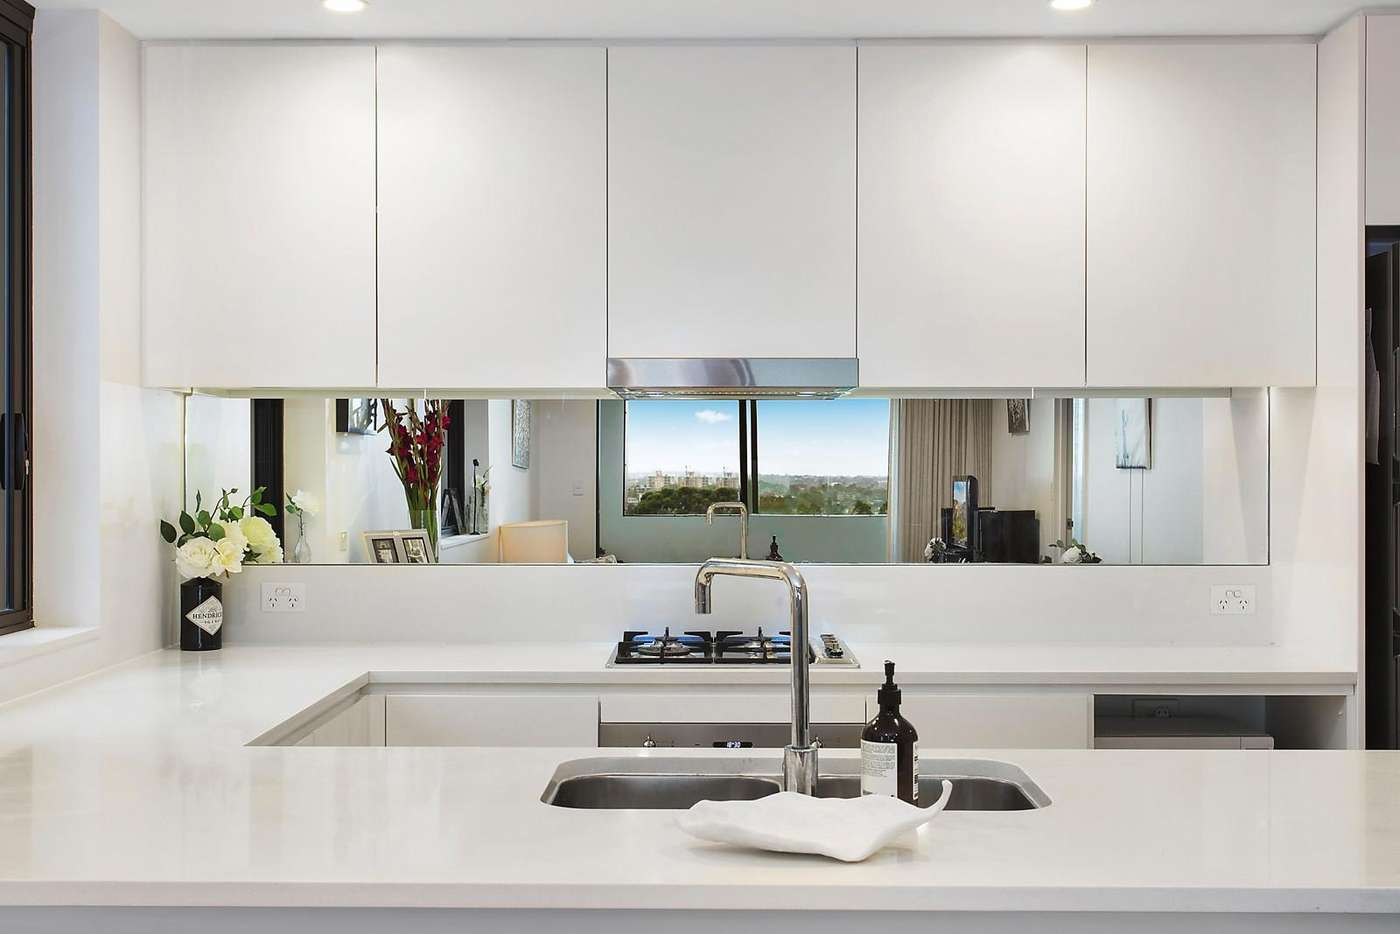 Main view of Homely apartment listing, 213/64 Gladesville Road, Hunters Hill NSW 2110